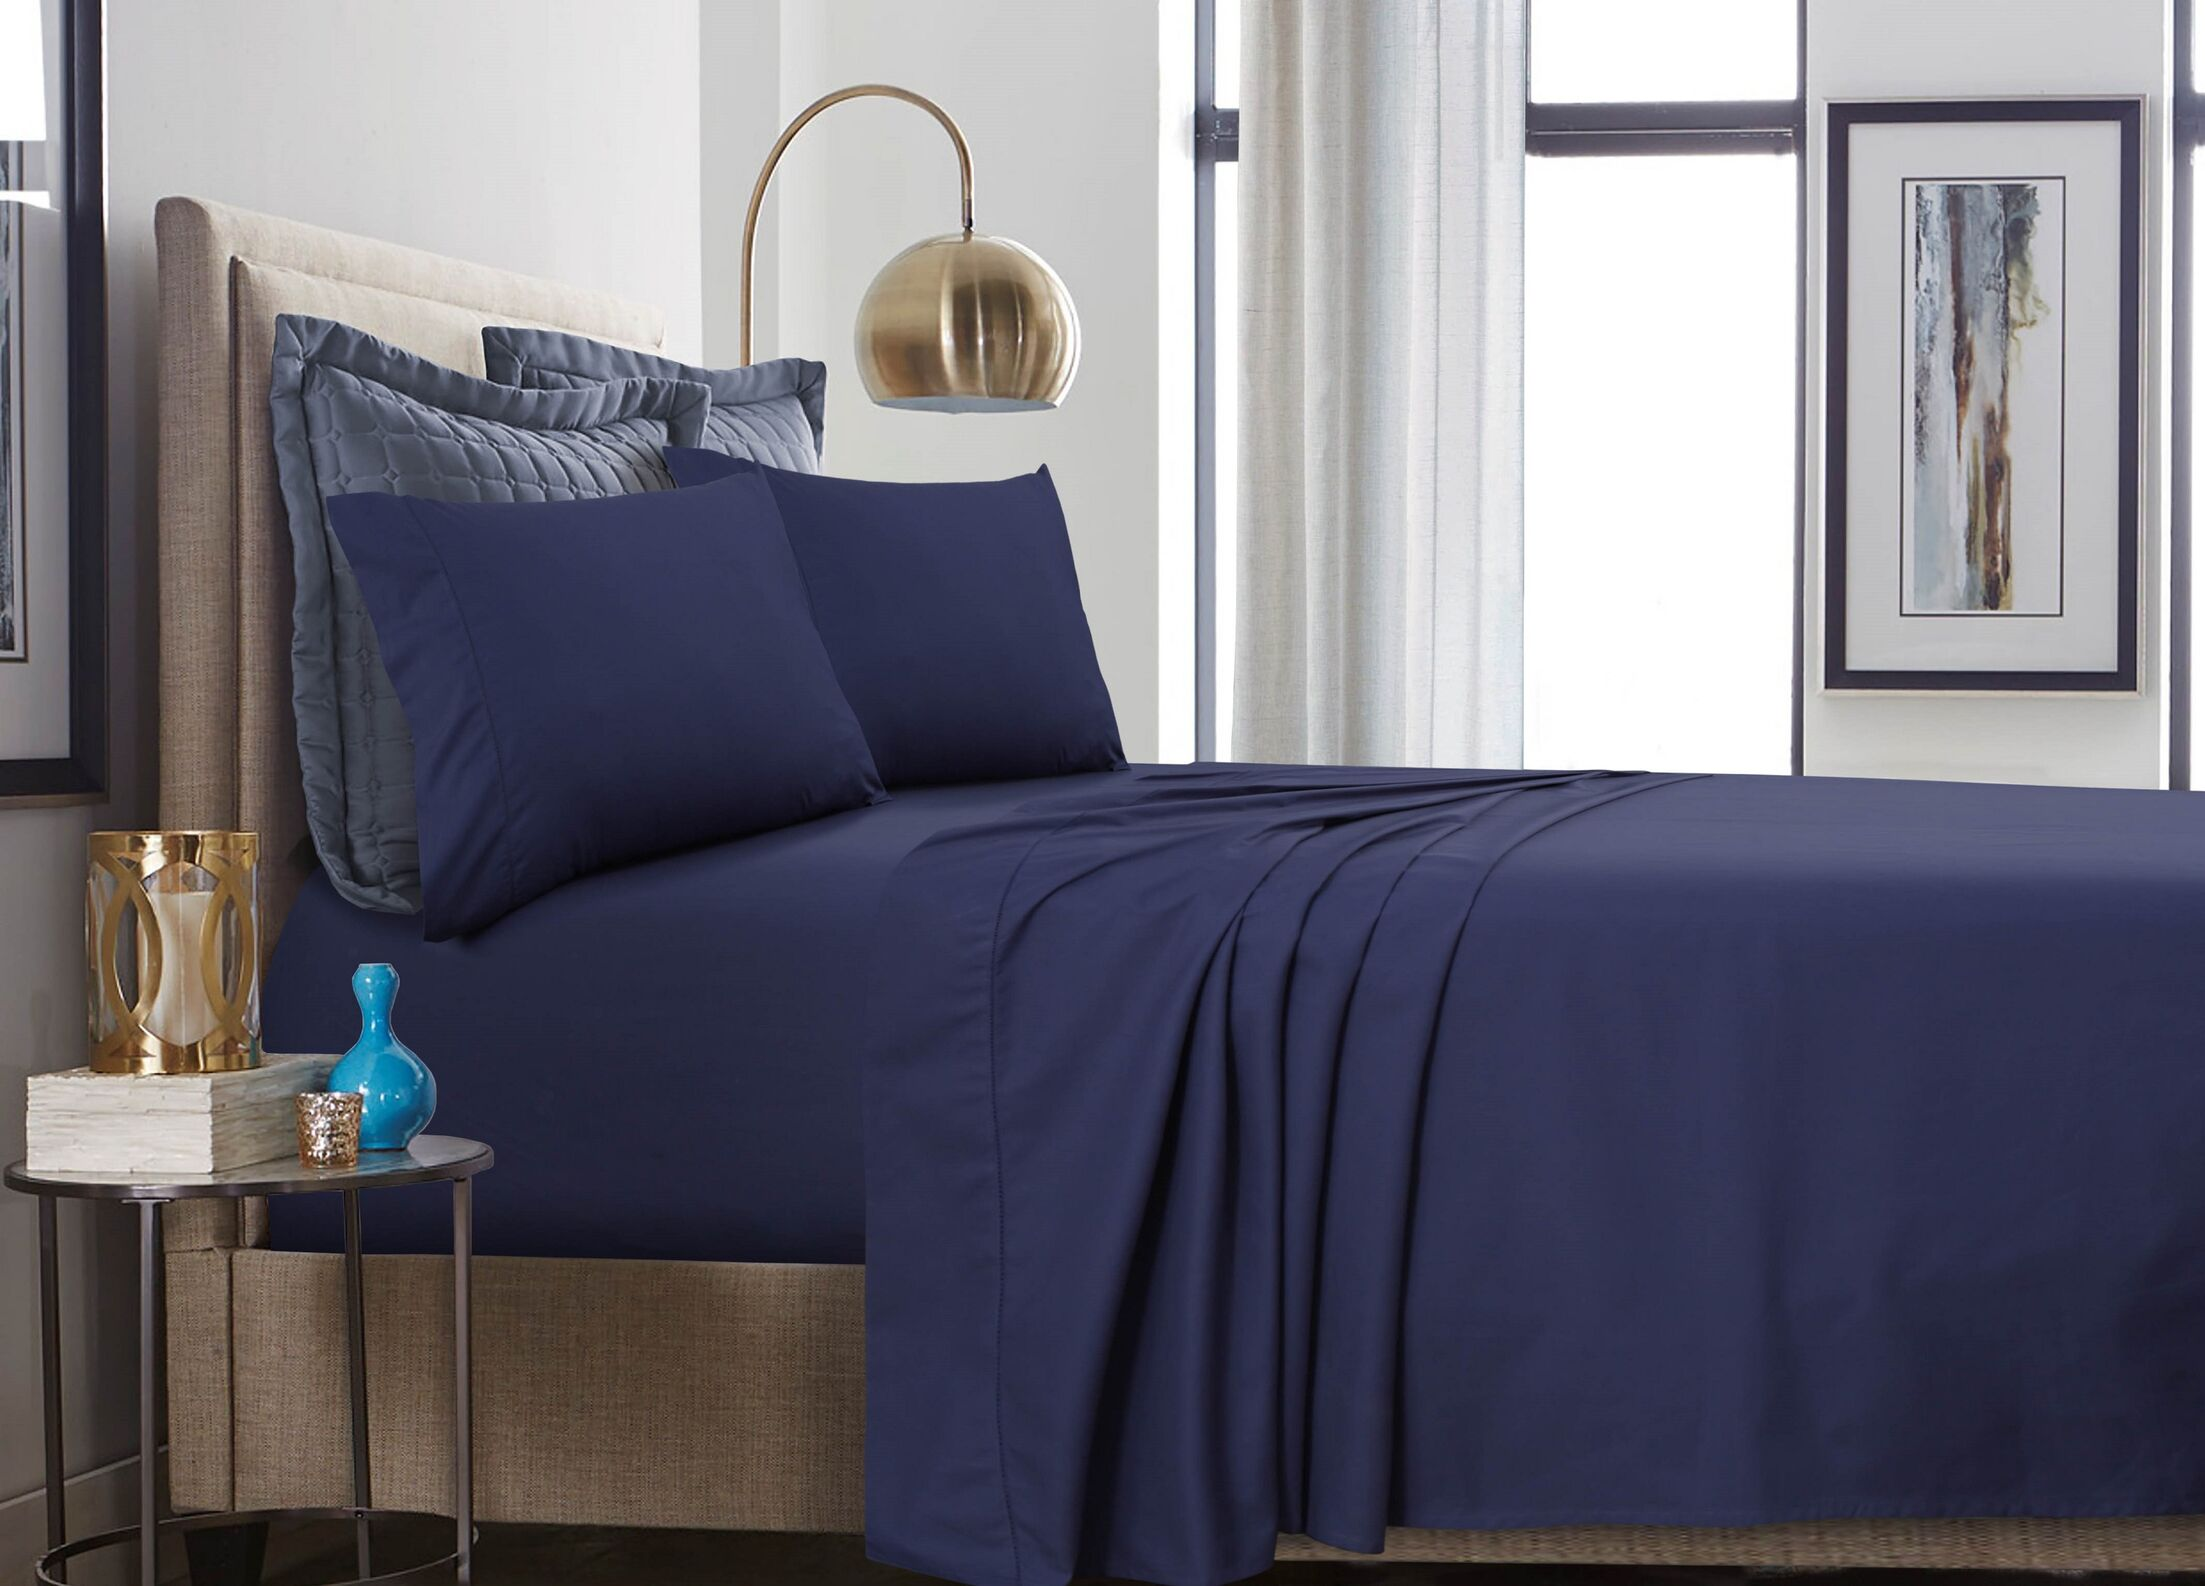 500 Thread Count 100% Cotton Percale Extra Deep Pocket Sheet Set Size: Queen, Color: Navy Blue